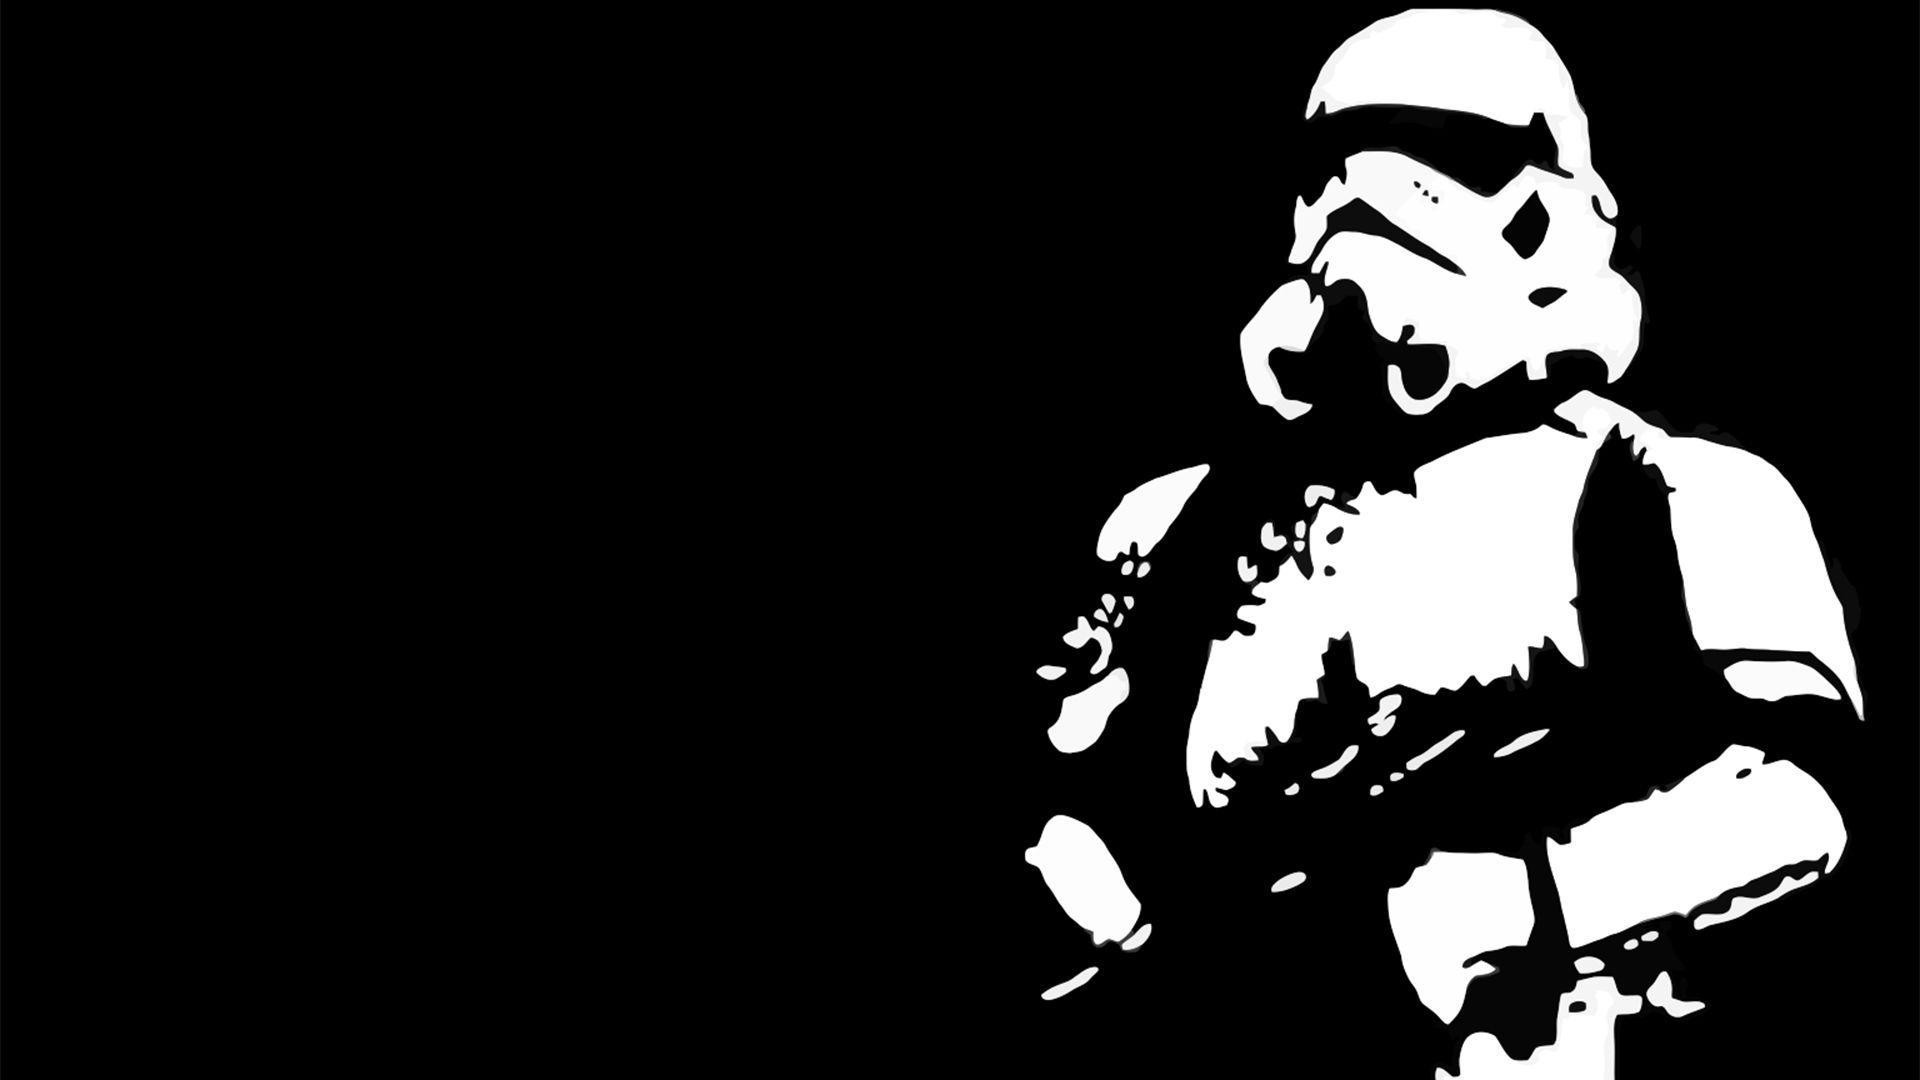 Star Wars Stormtrooper Wallpaper Wallpapertag